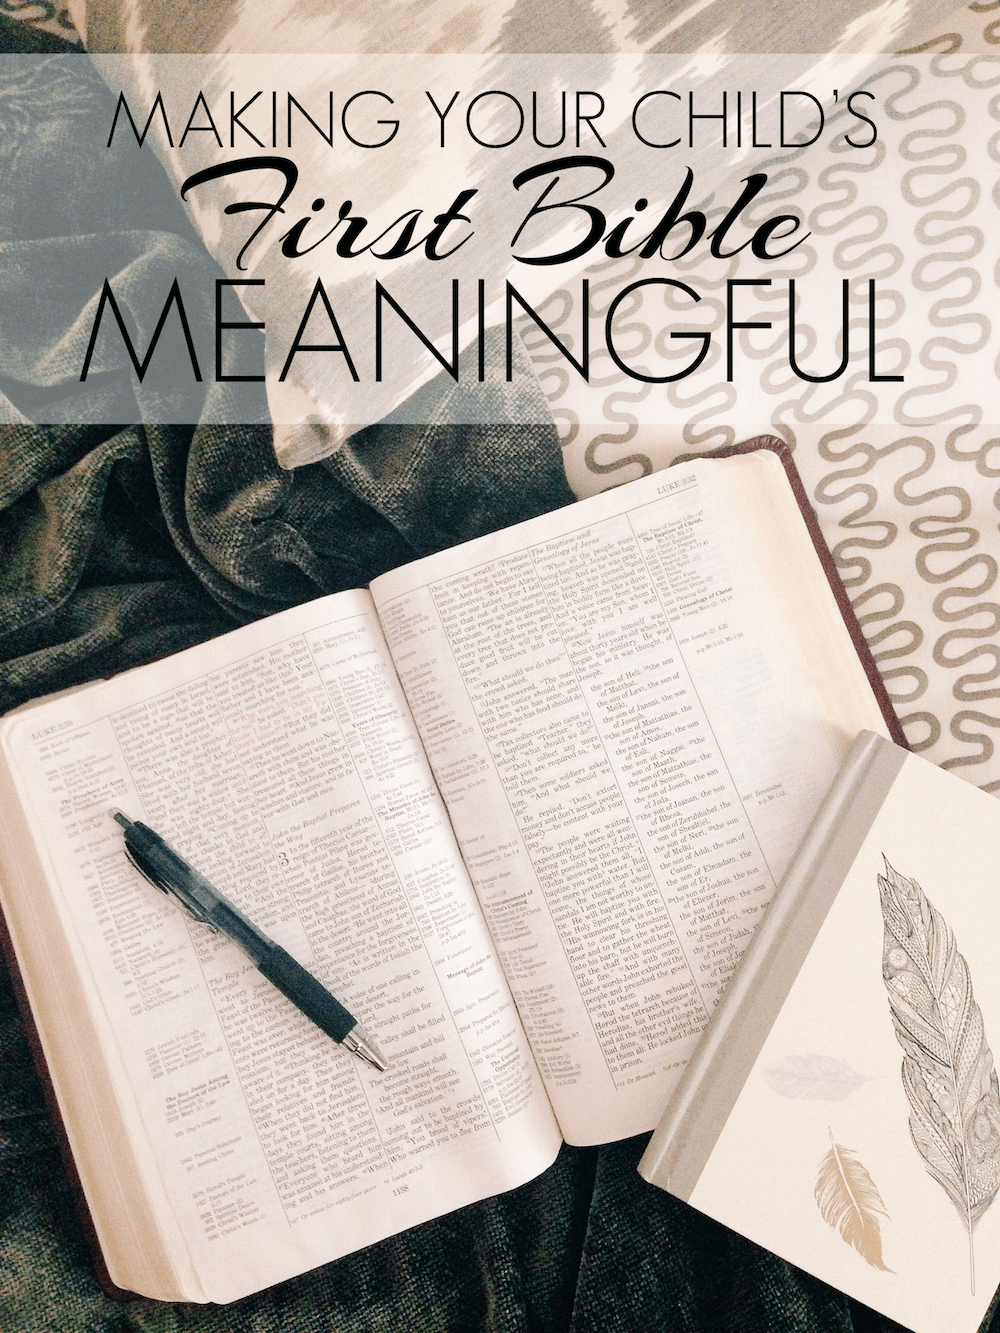 Making-Your-Childs-First-Bible-Meaningful copy